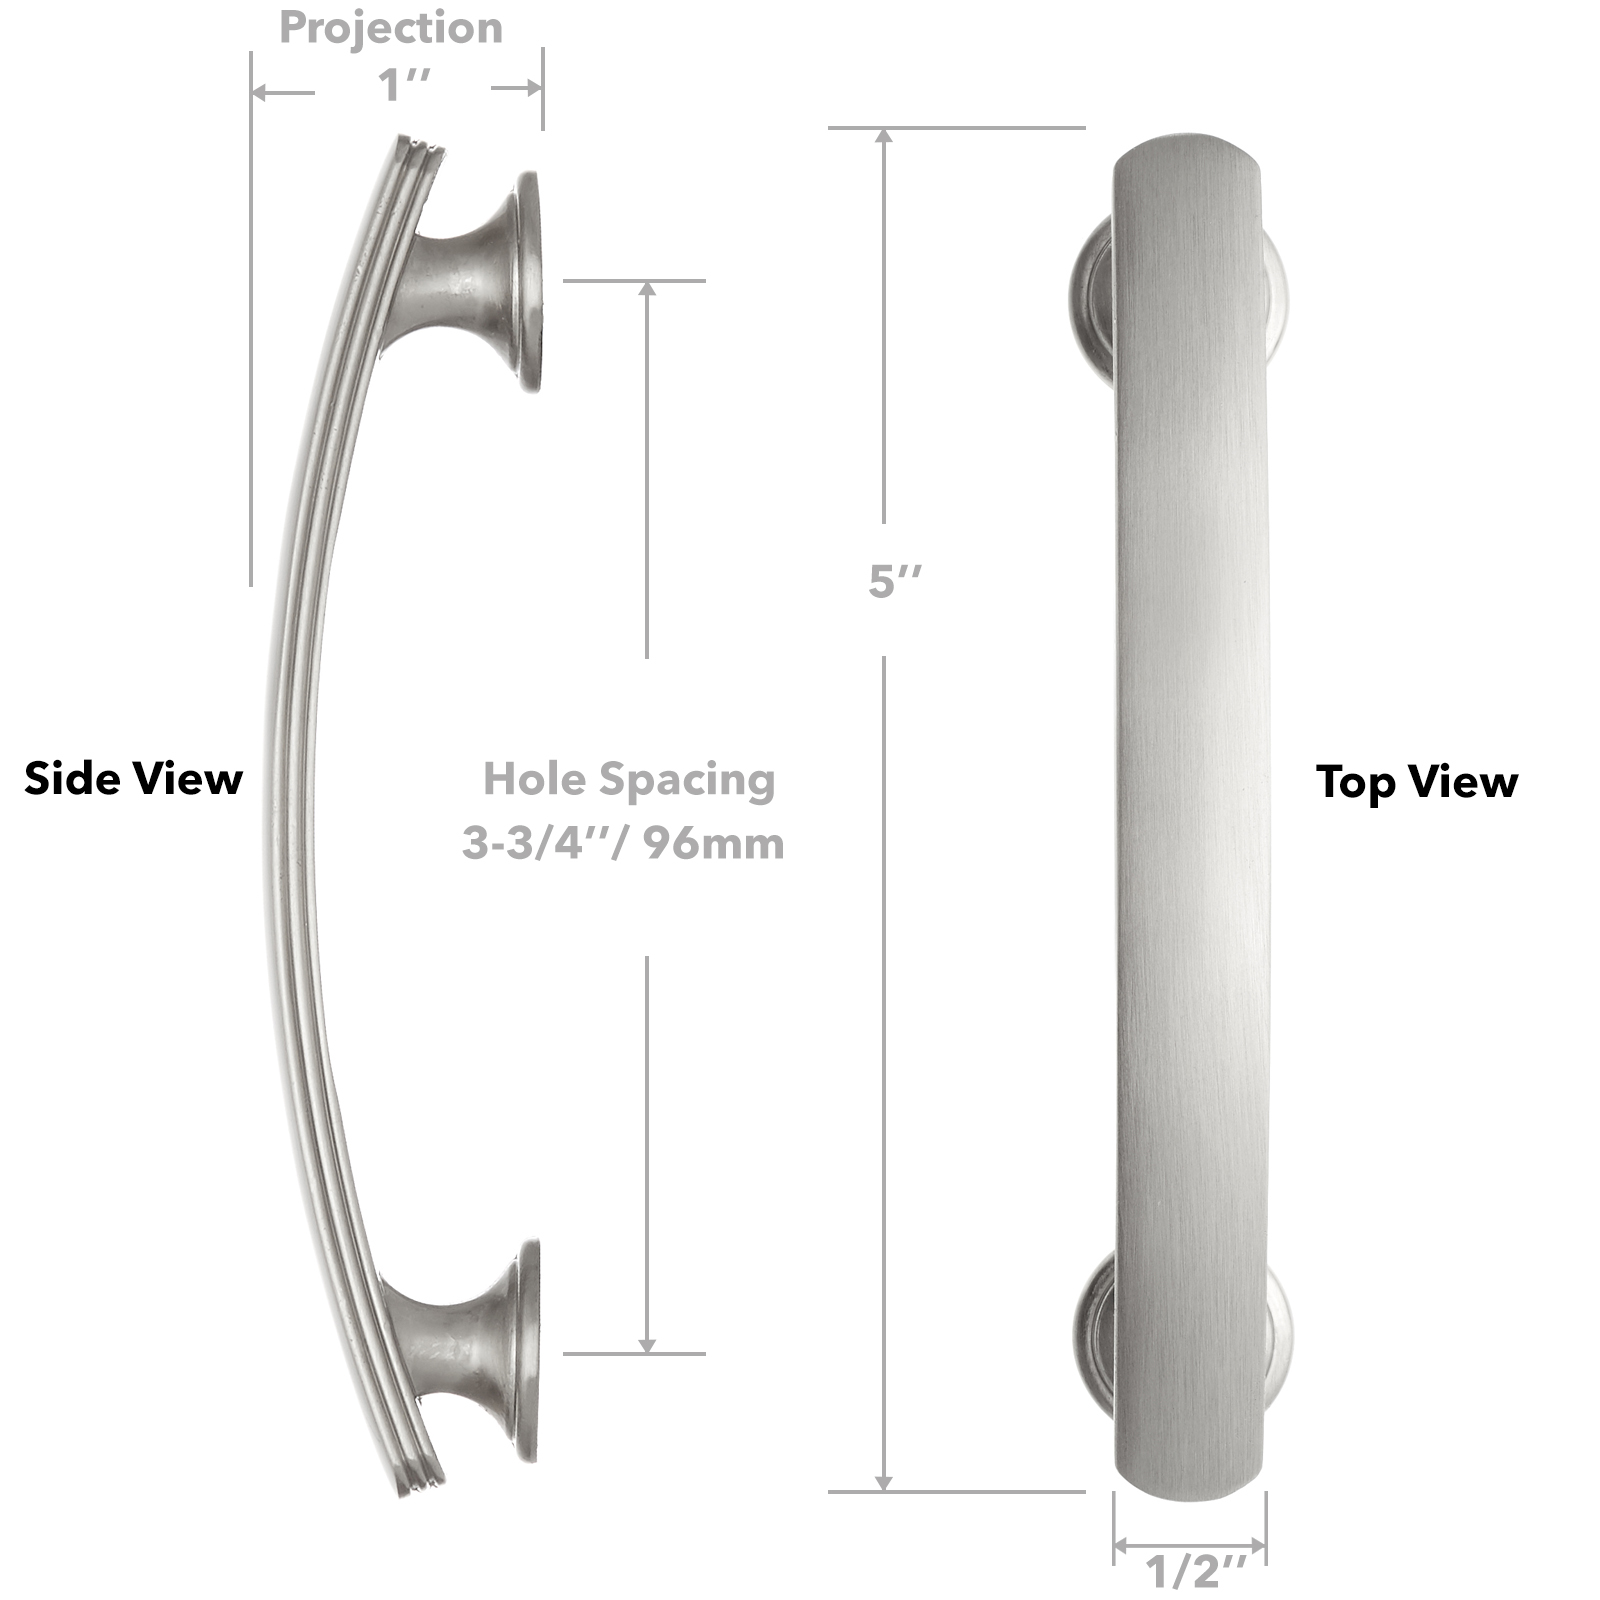 """thumbnail 11 - Satin Nickel 3-3/4"""" Curved Arch Kitchen Cabinet Handles Pulls Hardware"""